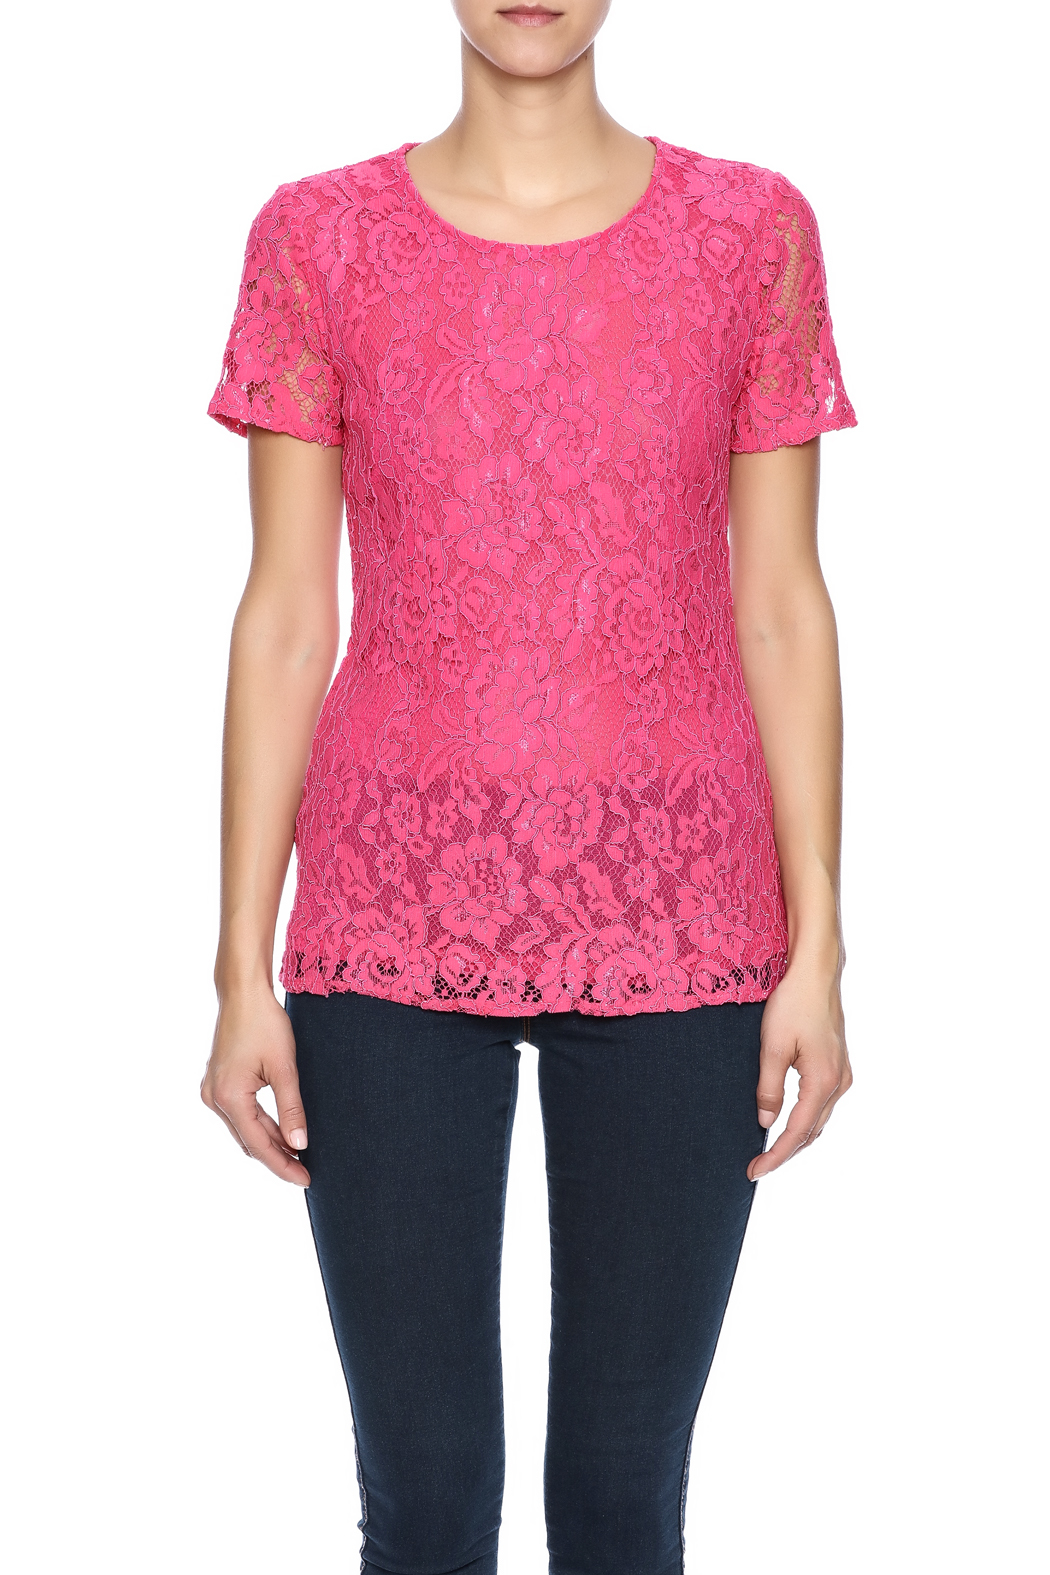 Betas Choice Pink Lace Top - Side Cropped Image